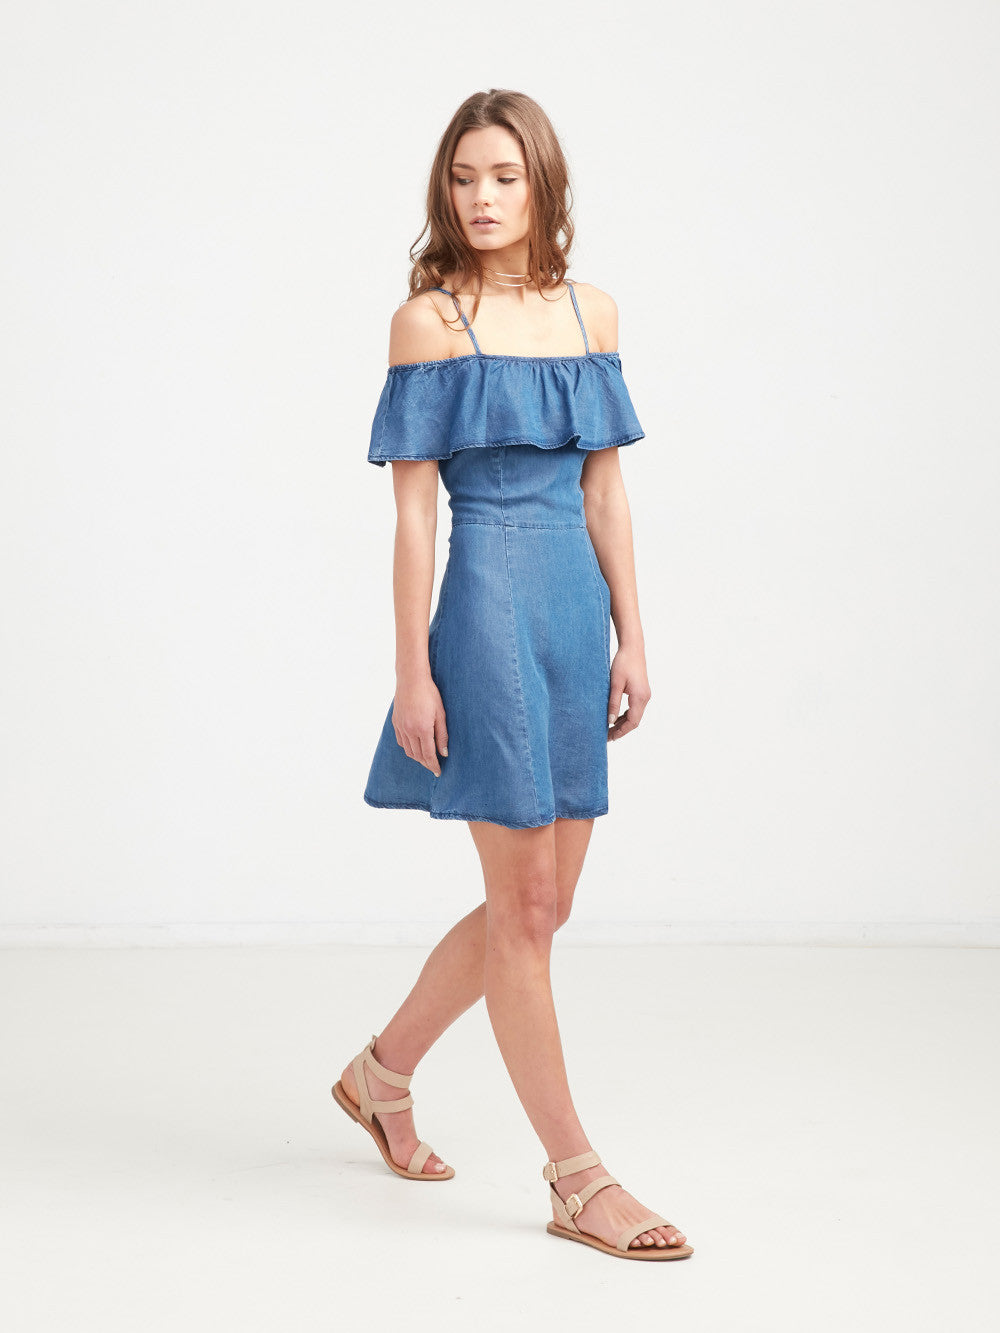 Ashley Flirty Denim Dress